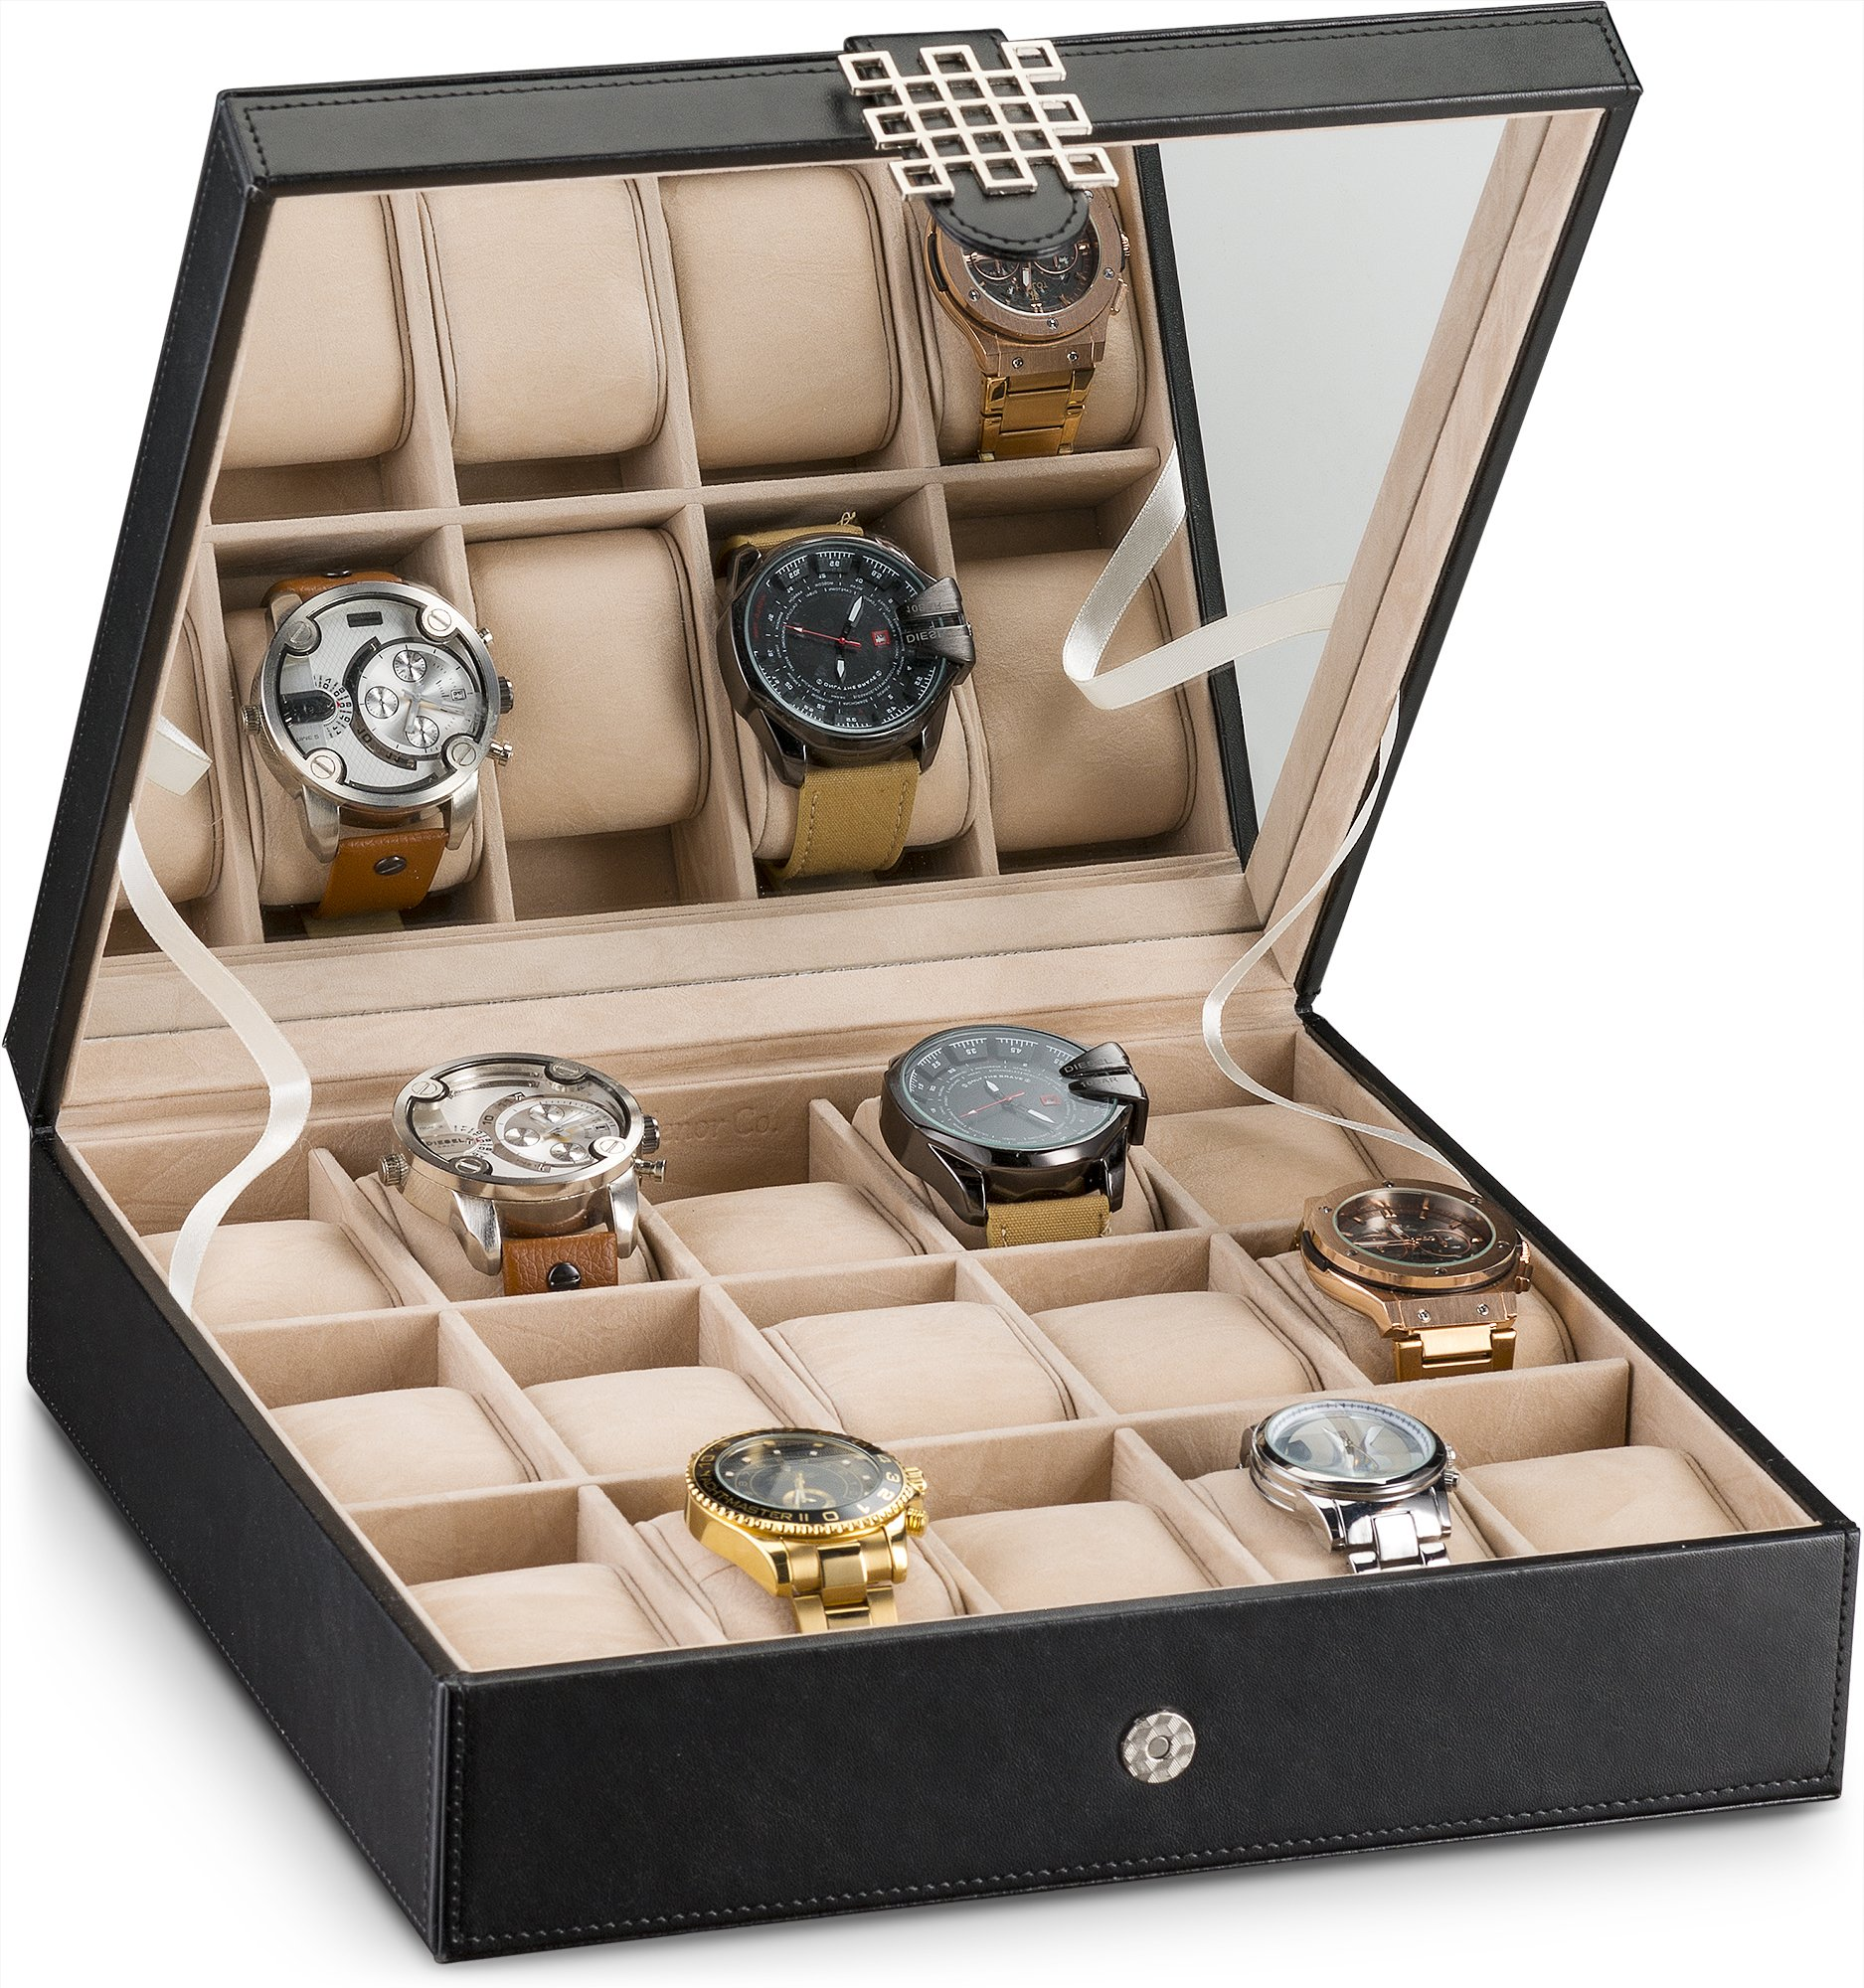 Glenor Co Watch Box for Women - 15 Slot Classic Watch Case Display Organizer with Modern Buckle -Black